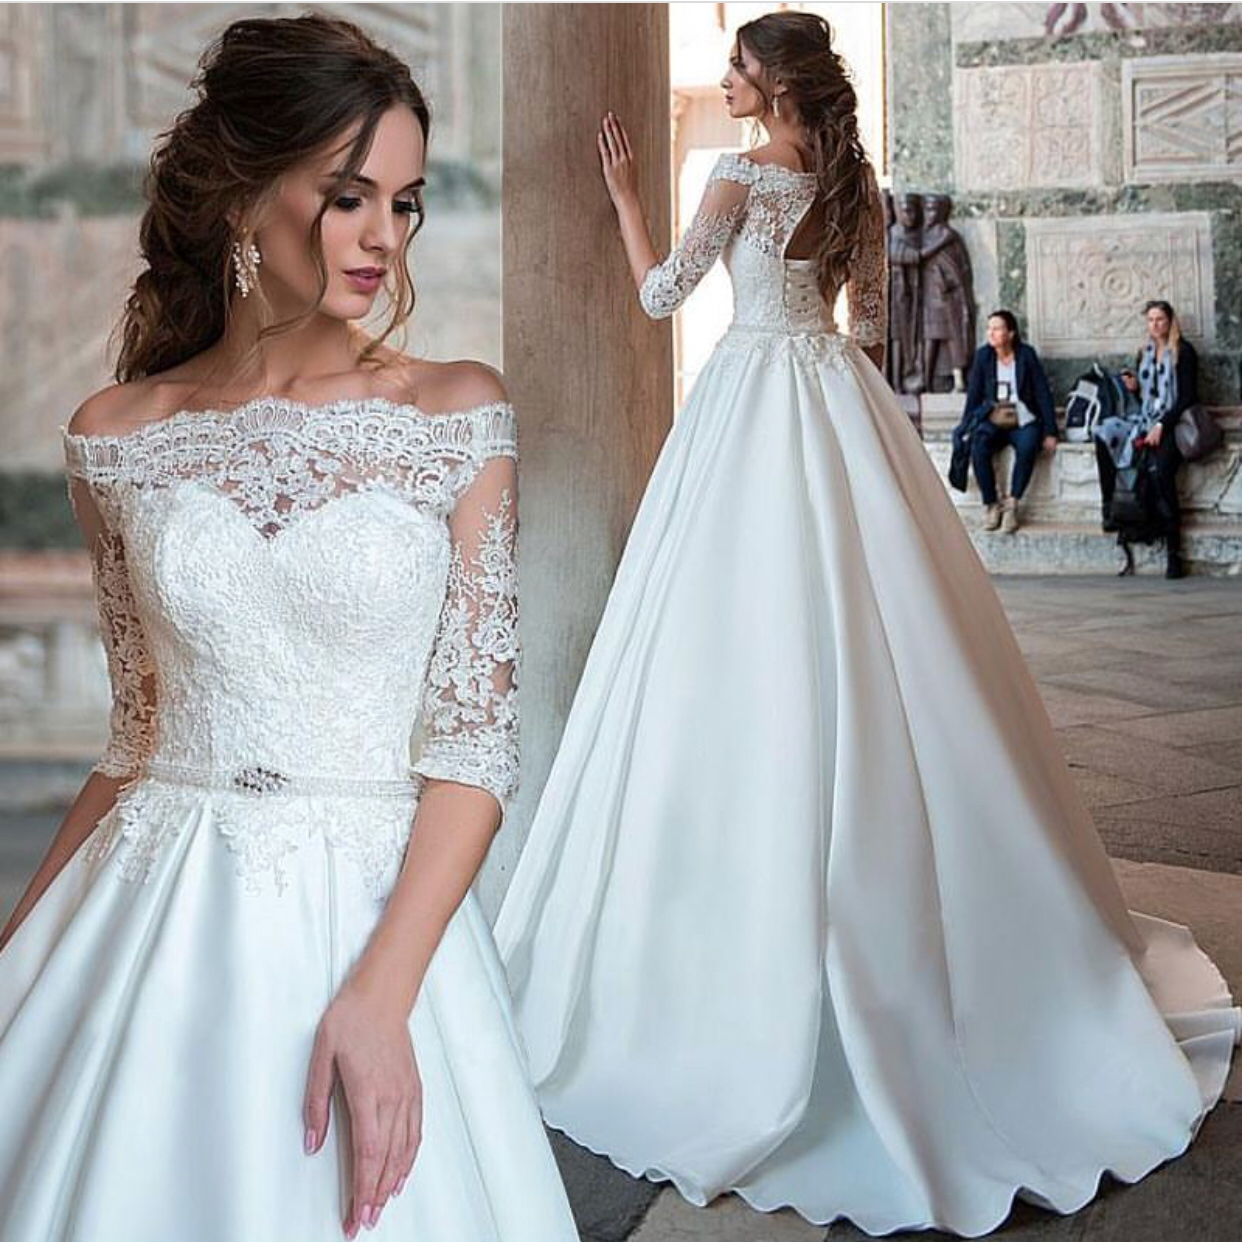 Wedding Gowns Lace Sleeves: Half Sleeve Wedding Dress, Lace Wedding Dress, Satin